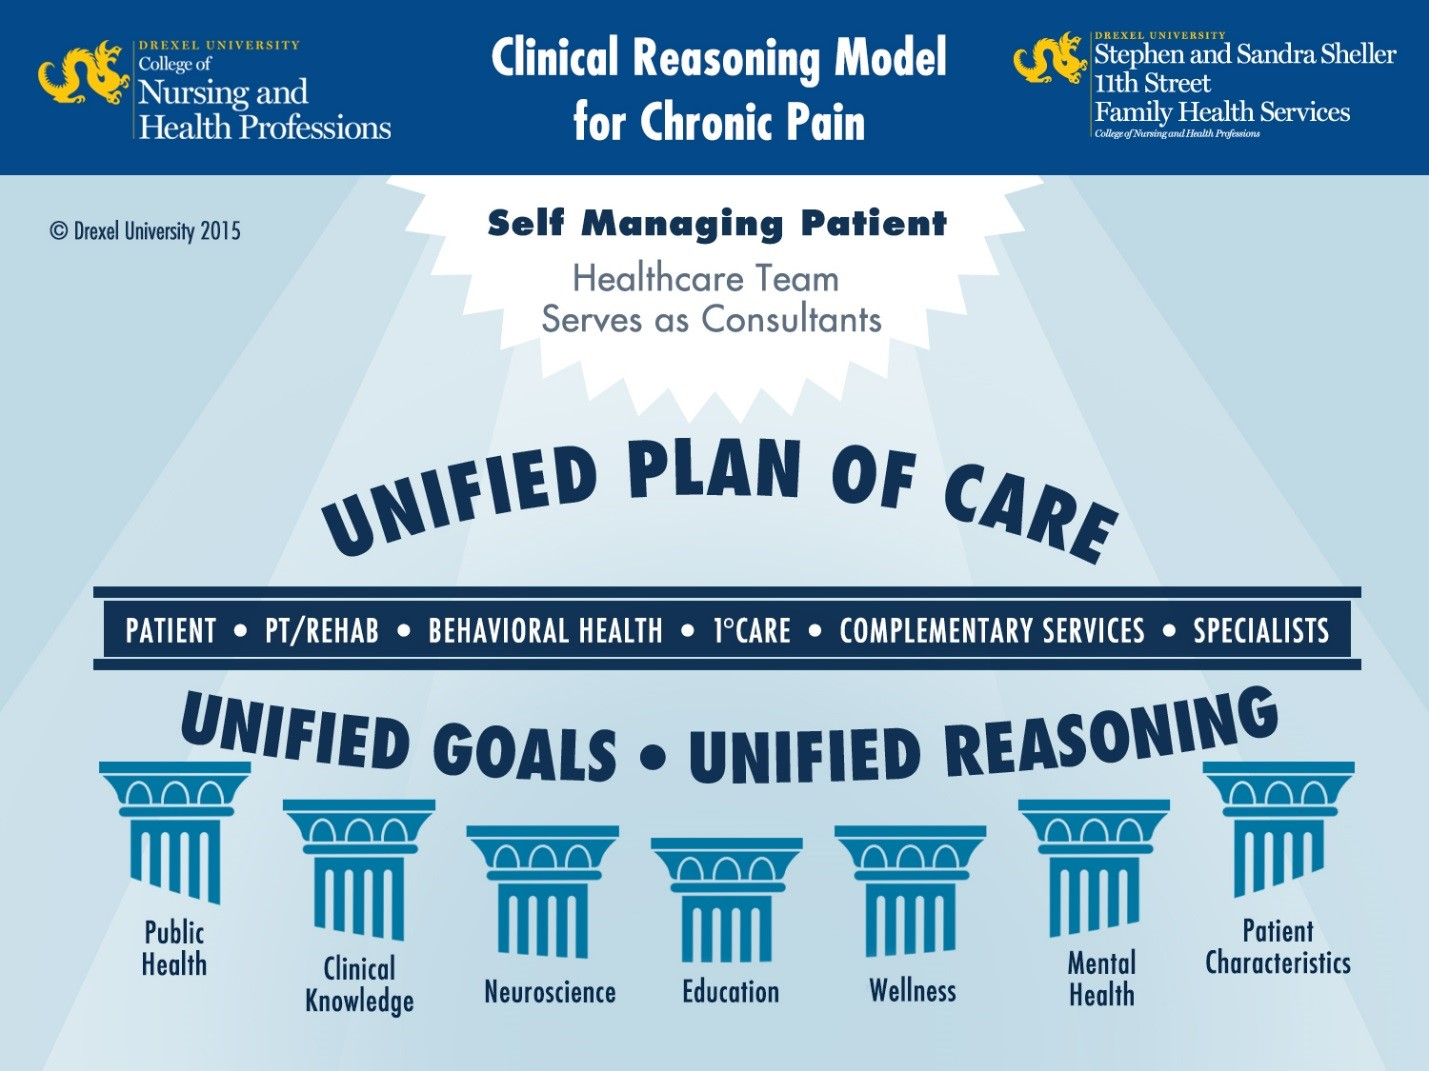 Power over Pain Plan of Care